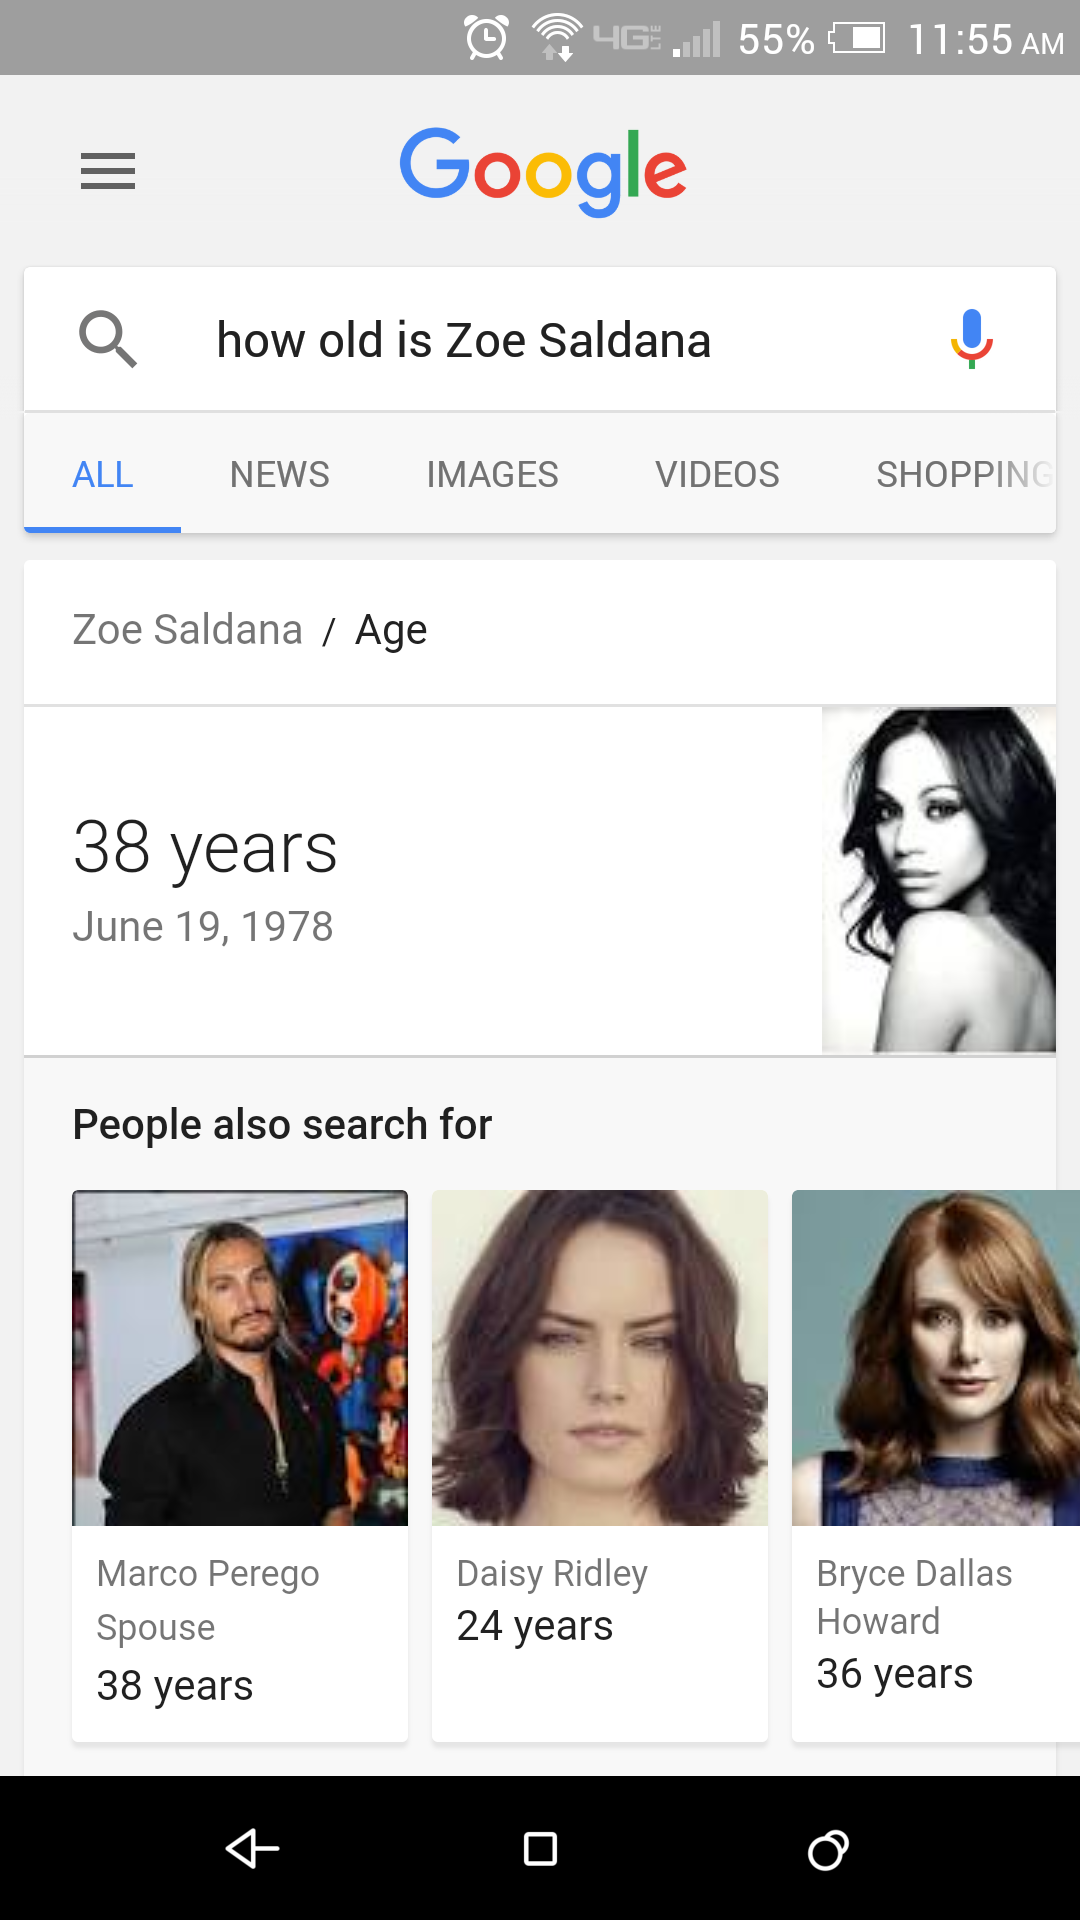 Google Voice Search Zoe Saldana age query